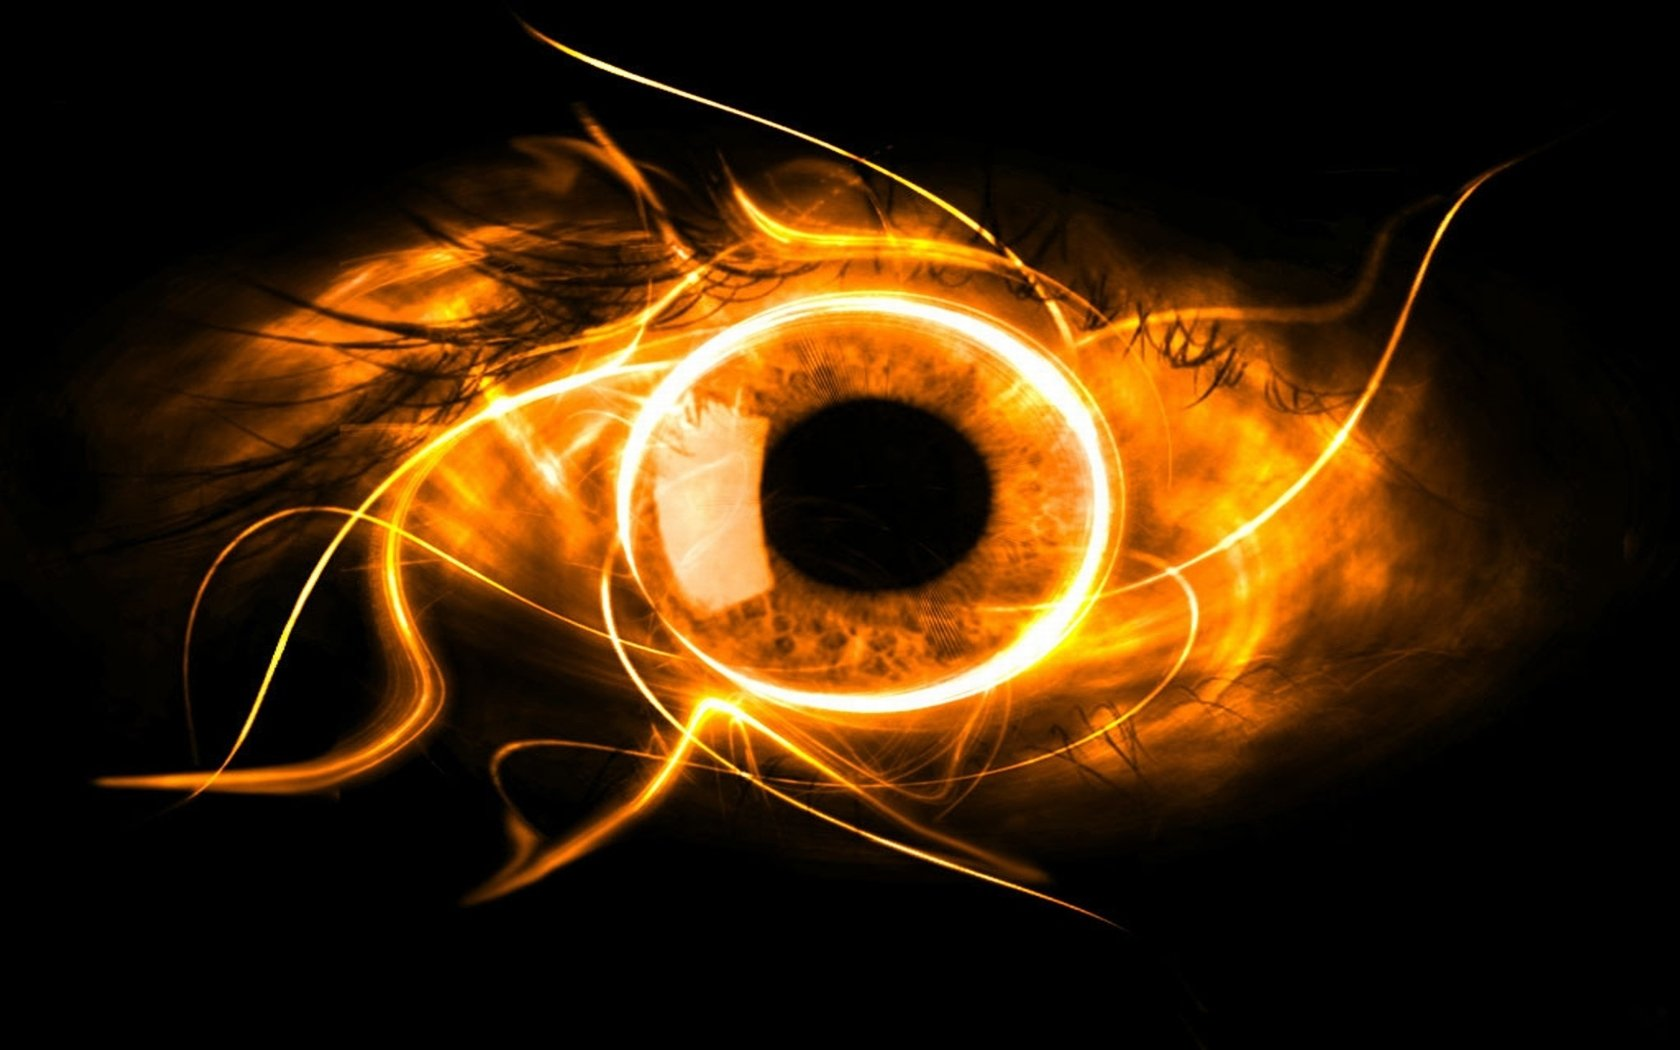 214 Eye HD Wallpapers | Backgrounds - Wallpaper Abyss